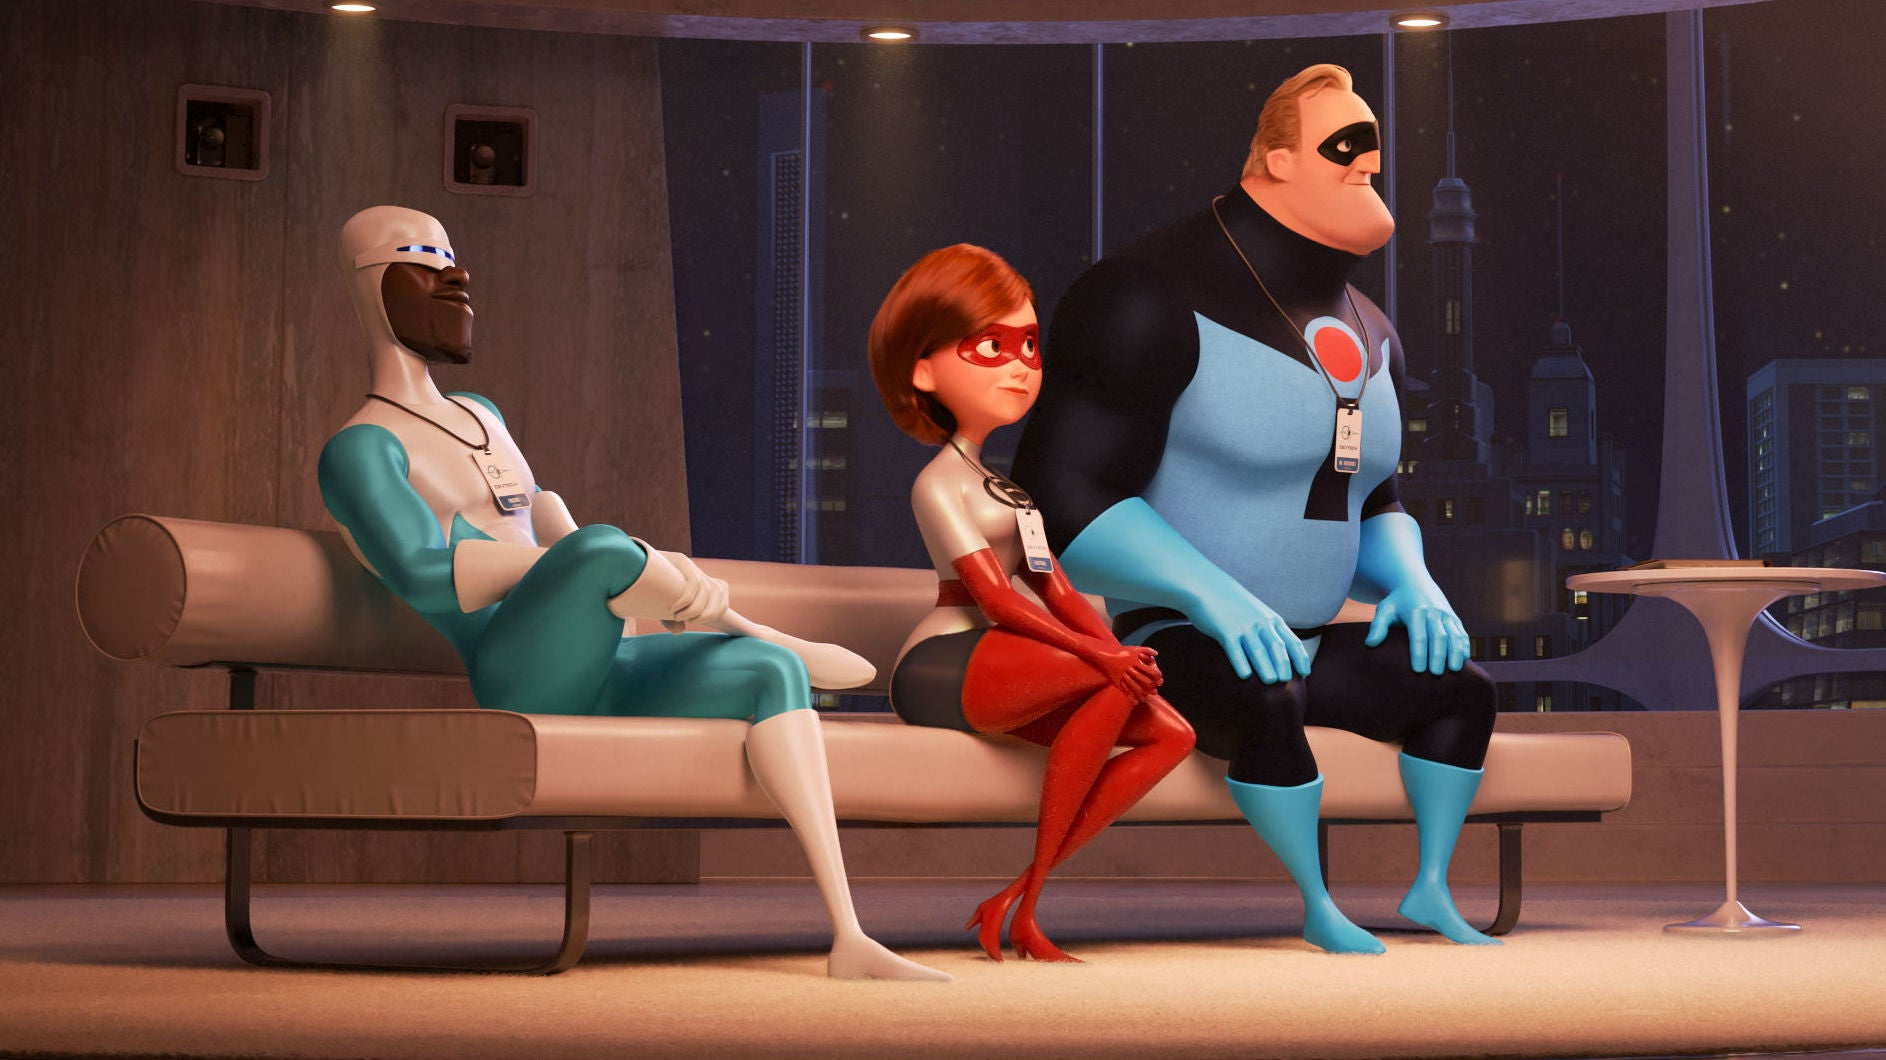 These Retro Theme Songs From Incredibles 2 Are Just What You Needed Today